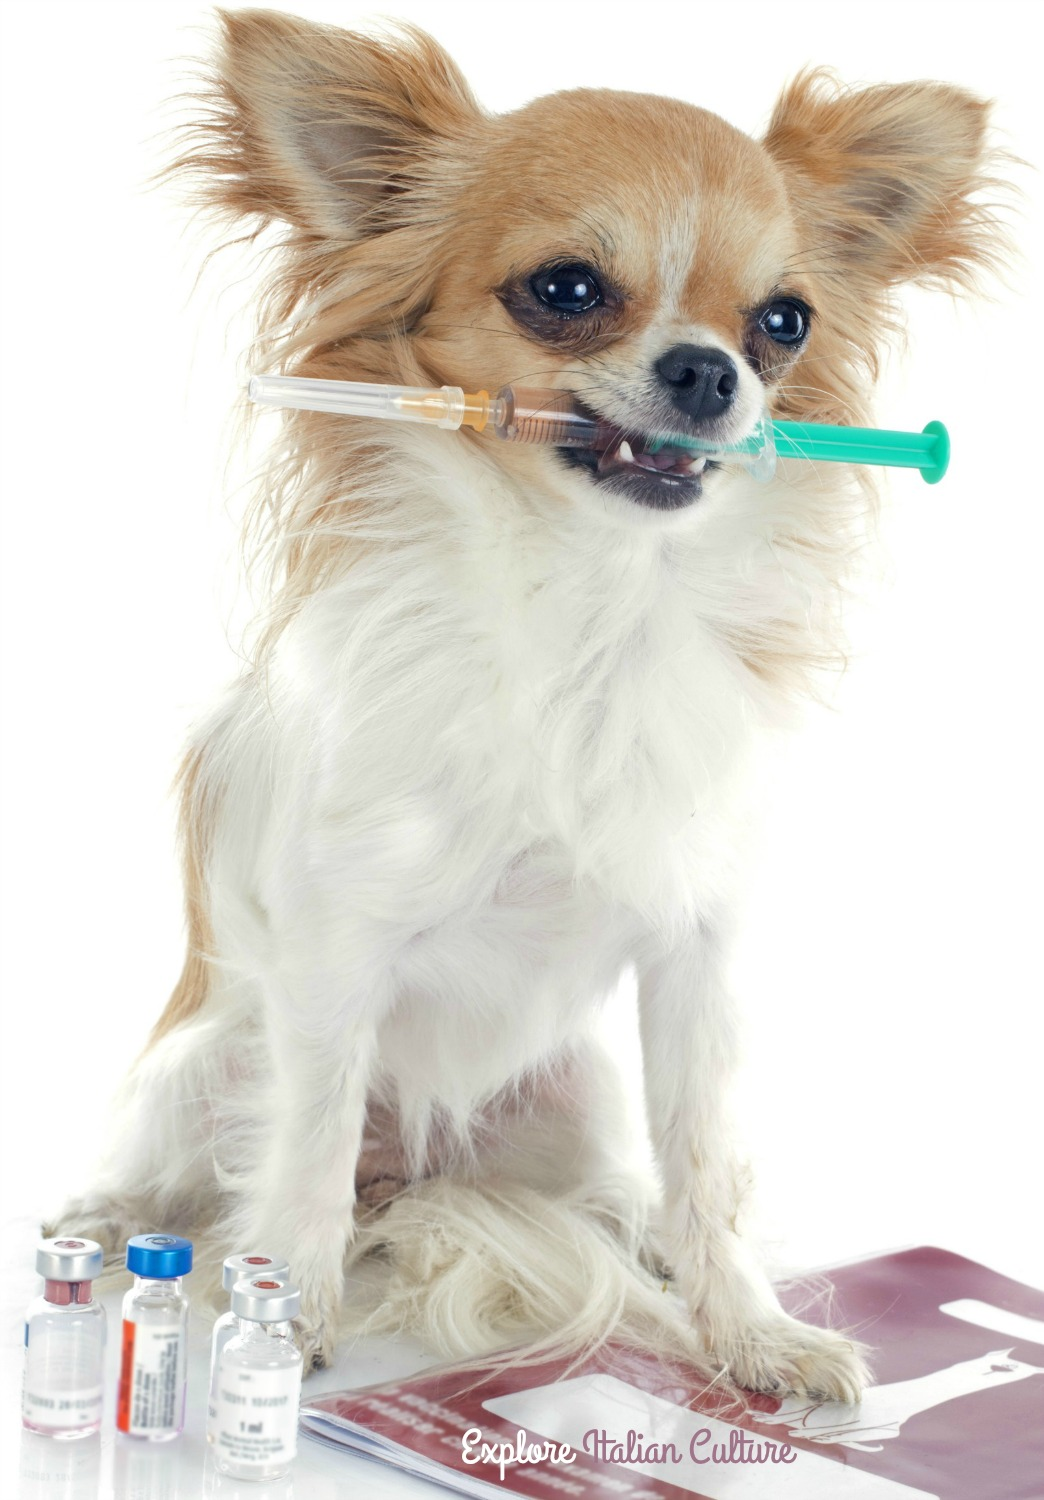 Dog holding inoculation needle.